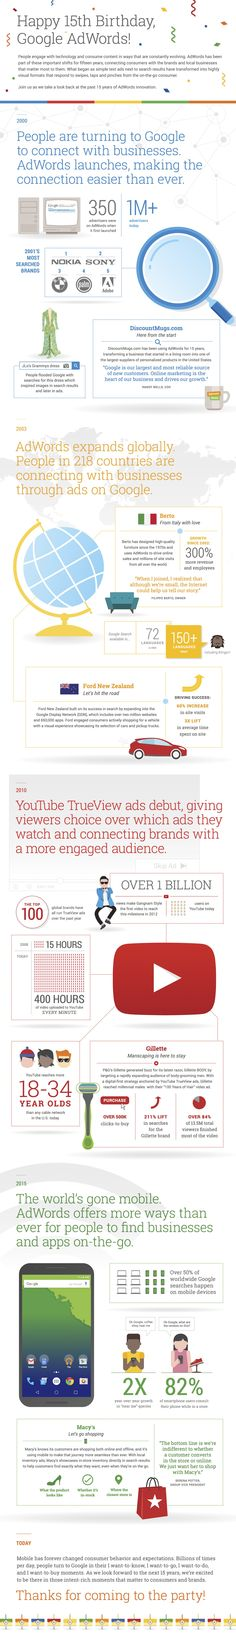 """[infographic] """"Happy 15th birthday Google AdWords!"""" Oct-2015 by Google Adwords."""